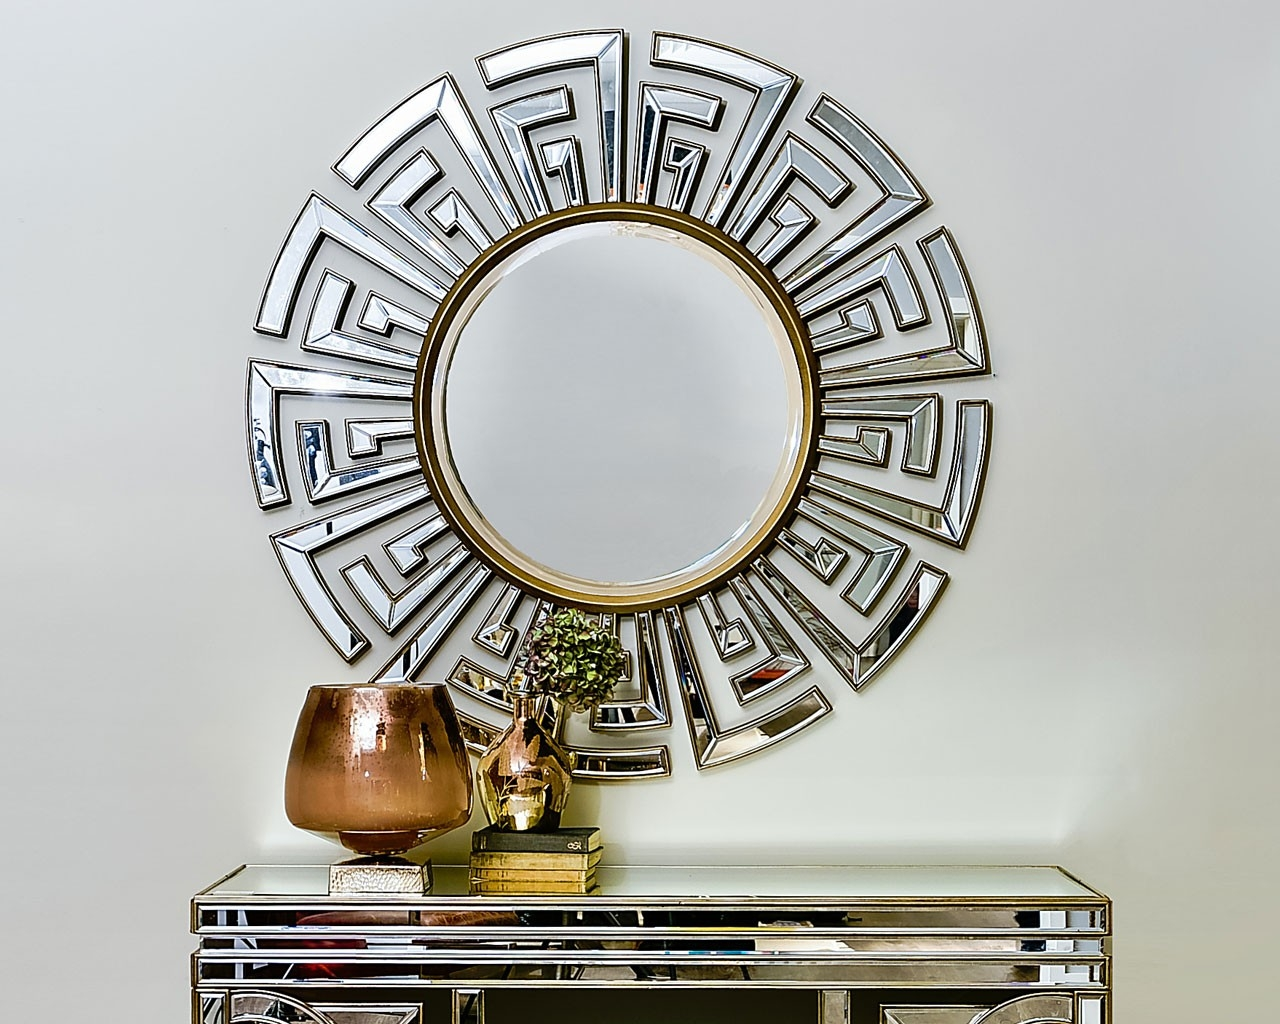 Contemporary Art Deco Round Mirror Statement Circular Mirrors Inside Round Art Deco Mirror (Image 9 of 15)